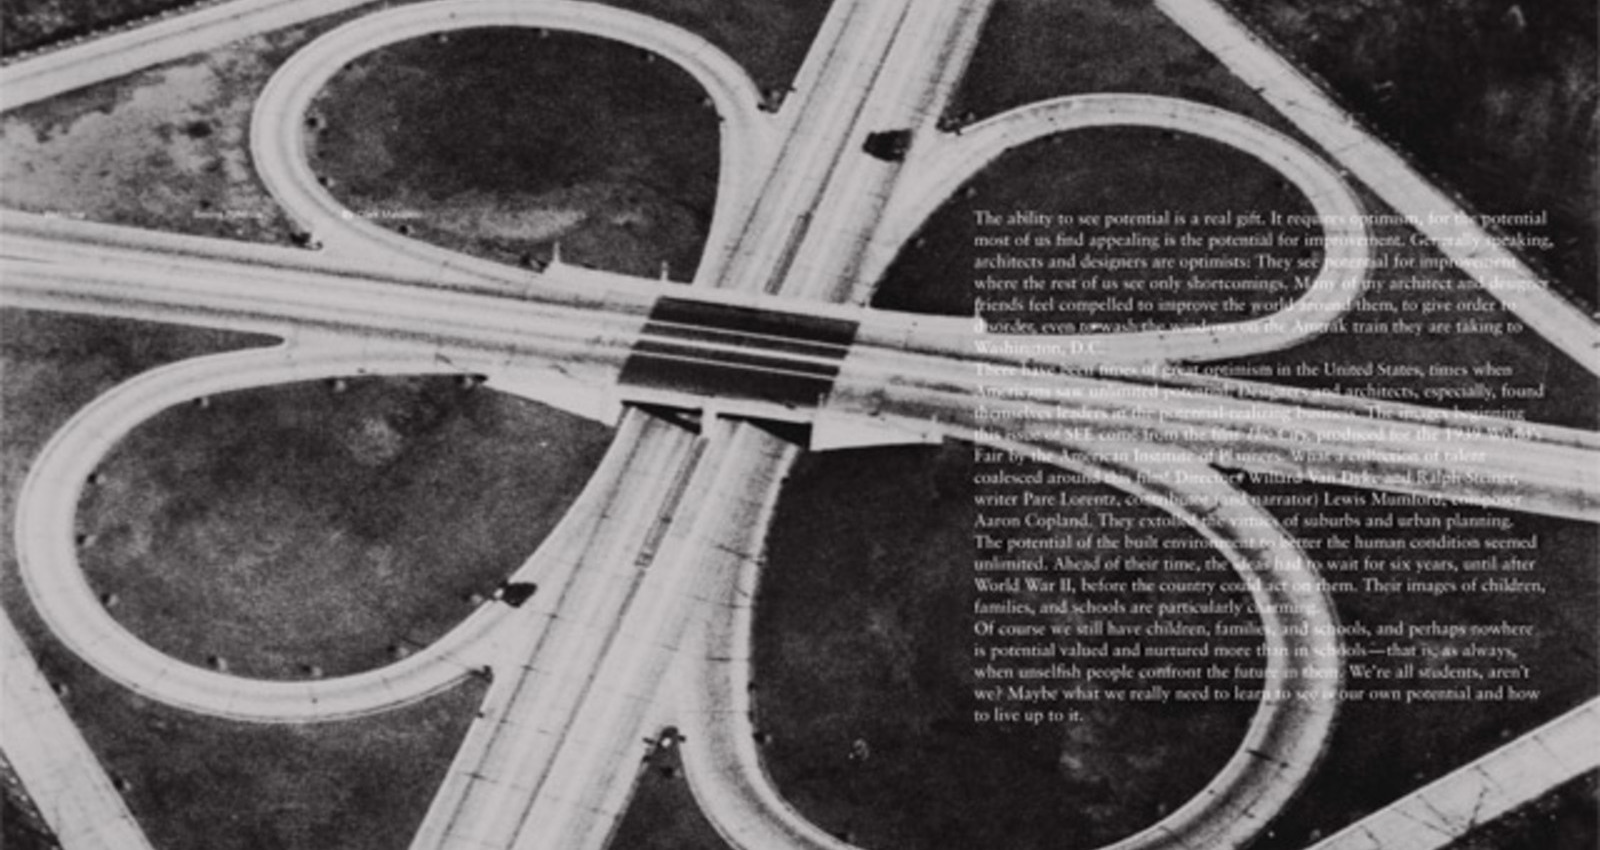 See: The Potential of Place, Second Issue